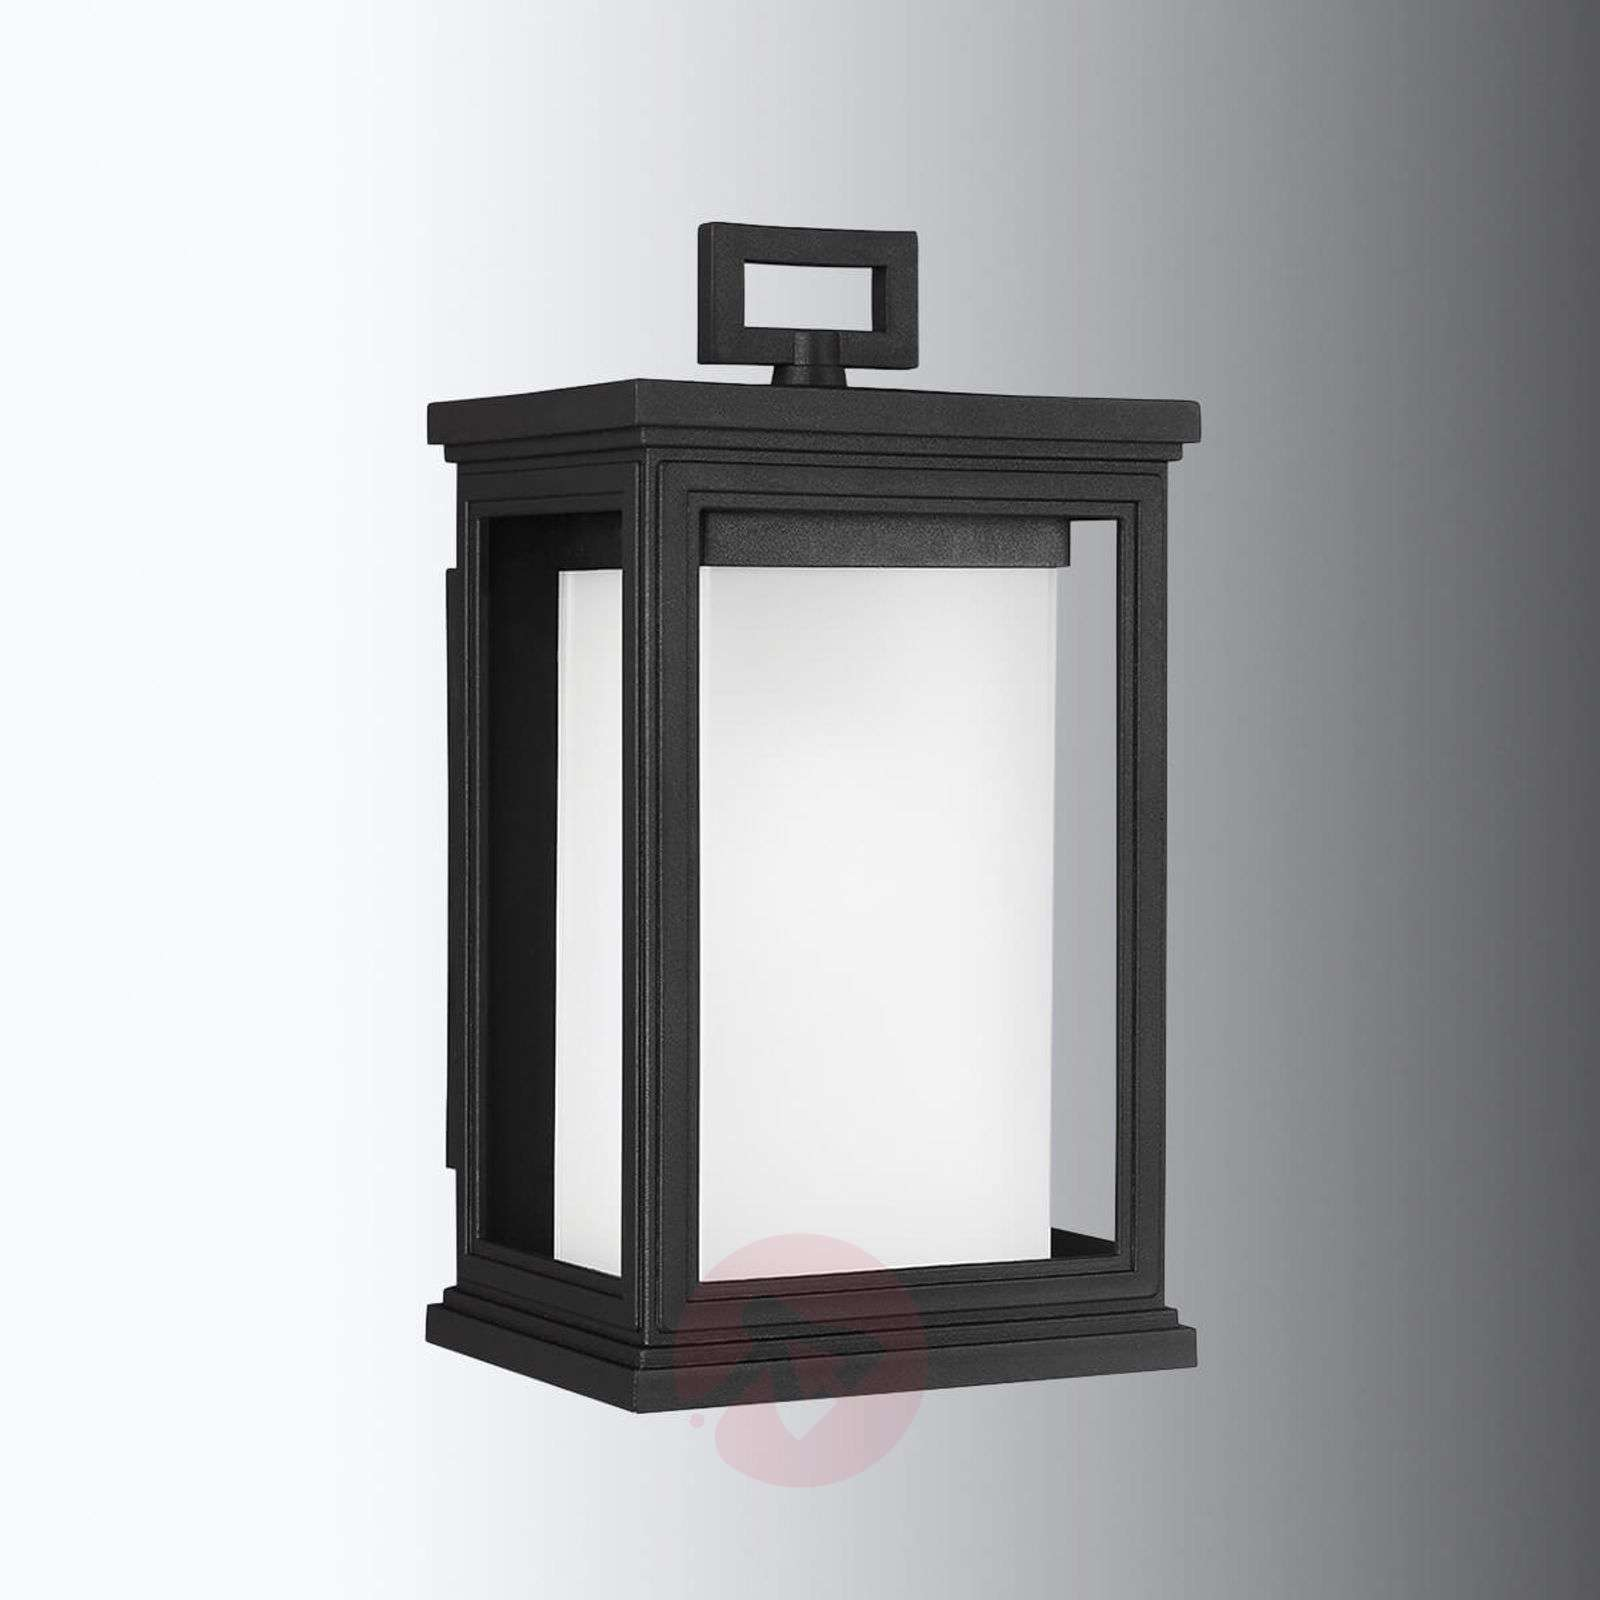 Modern Roscoe wall lantern for outdoors-3048837-01